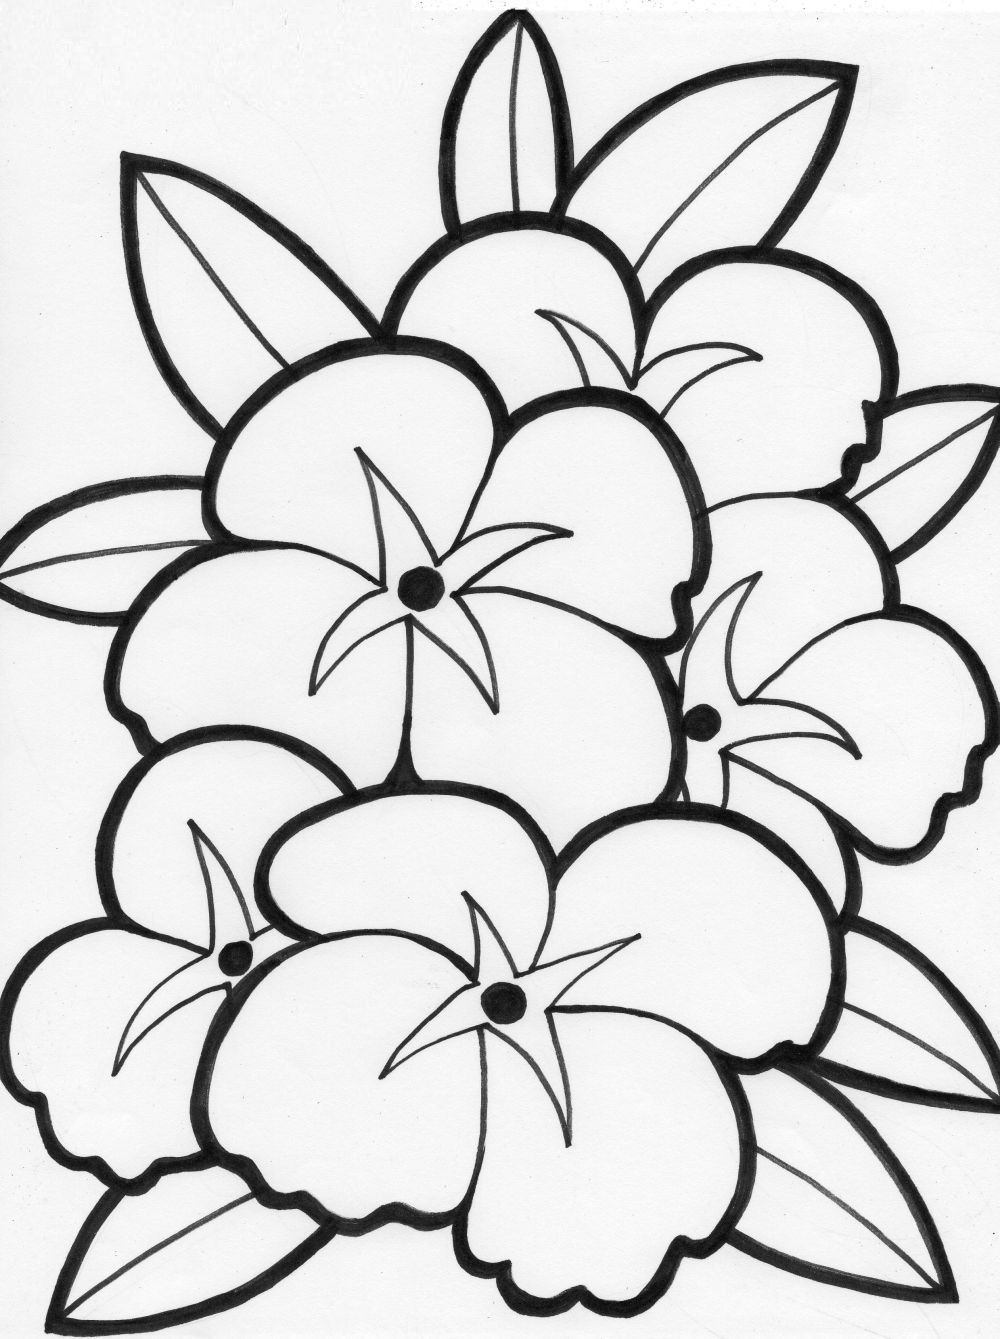 coloring pages of flowers for teenagers difficult printable coloring pages sheets for kids get the latest free coloring pages of flowers for teenagers - Coloring Pages Difficult Printable